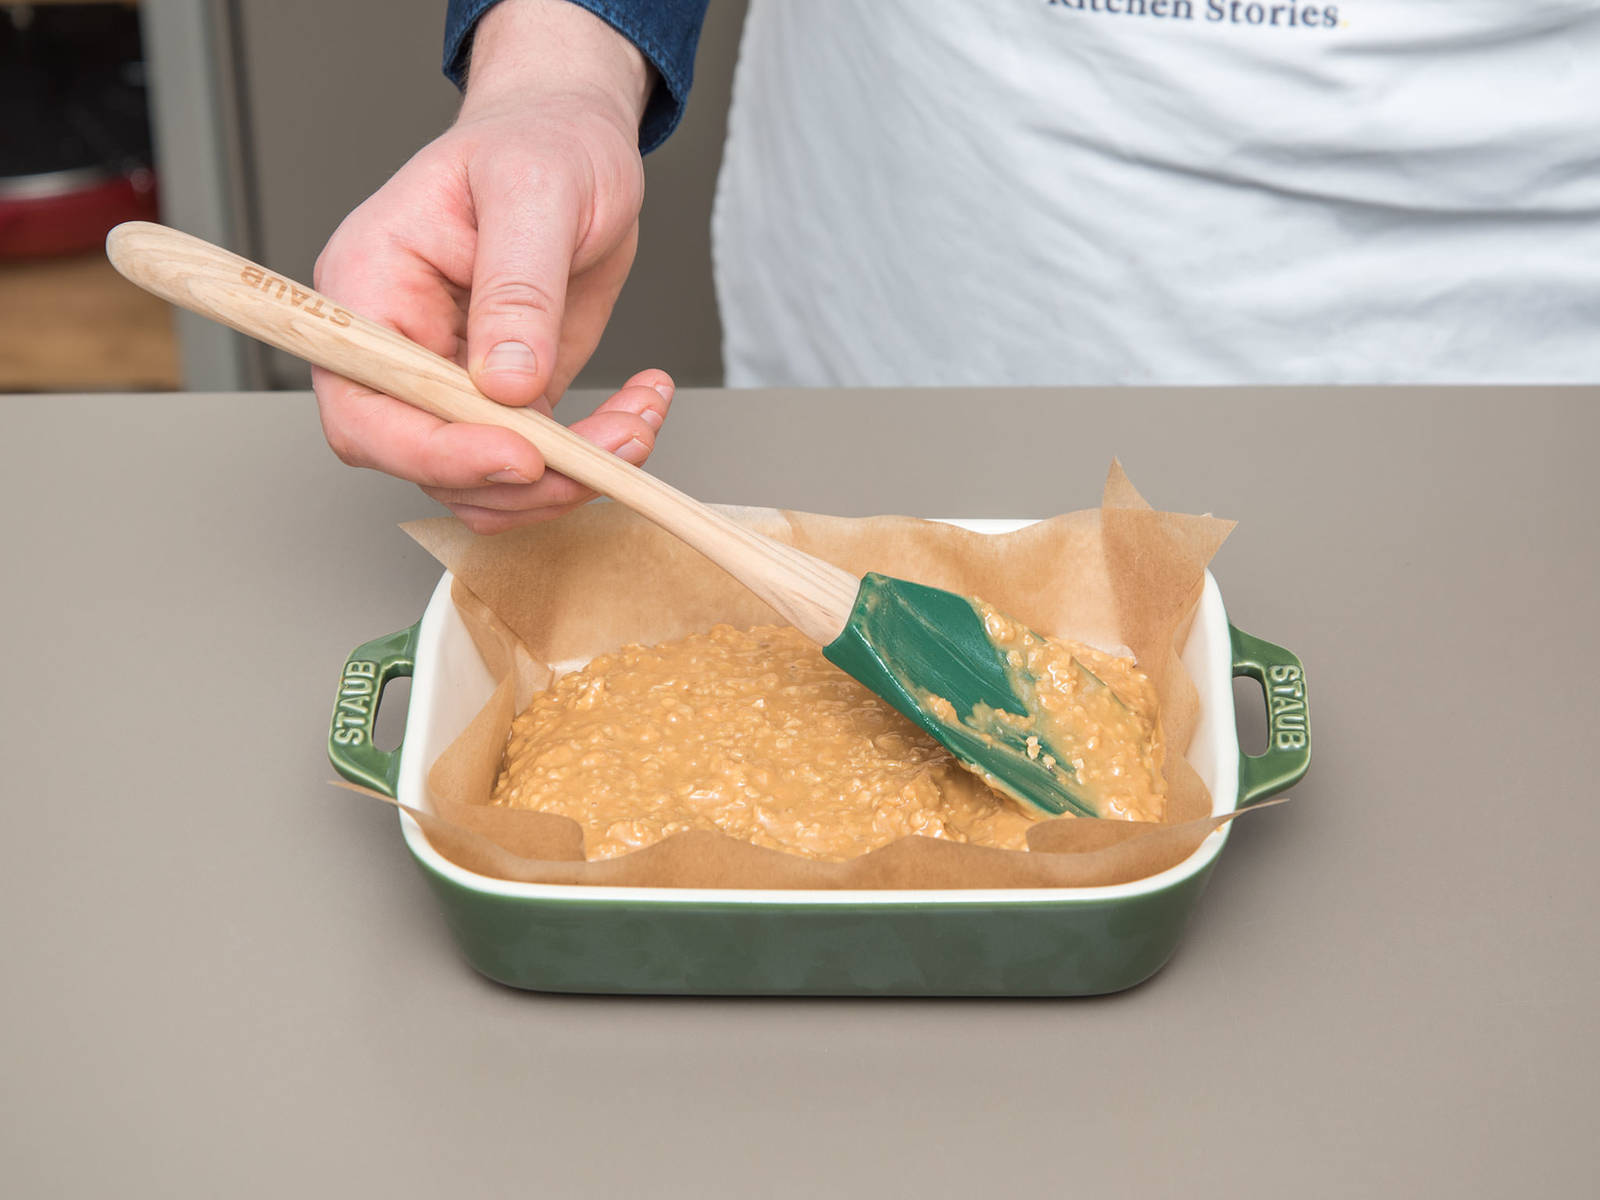 Line the baking dish with parchment paper and spread the peanut butter oat mixture evenly into the bottom of the dish with the rubber spatula. Press firmly. Freeze for approx. 20 min.